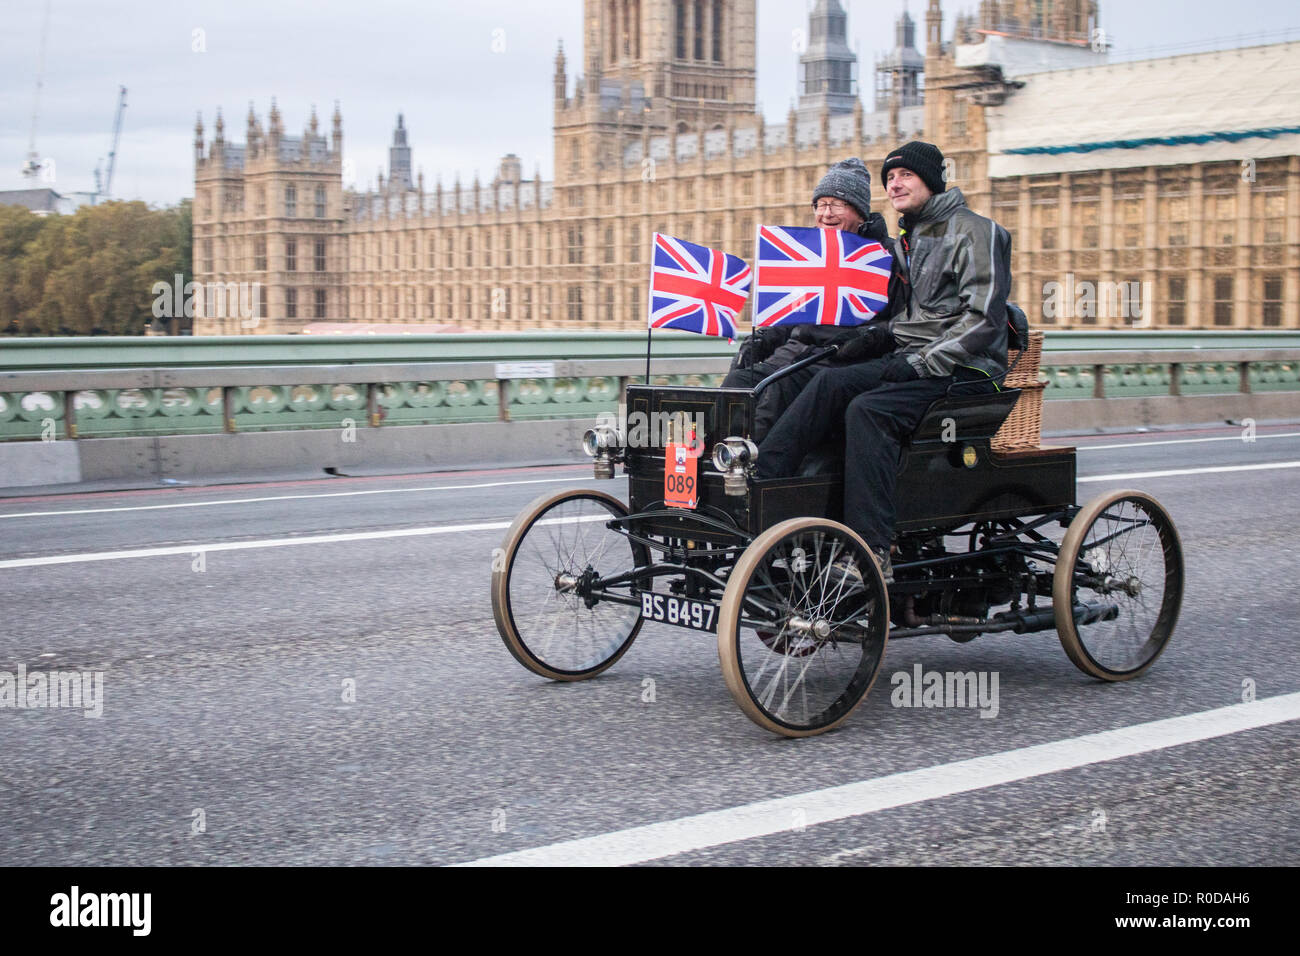 London UK. 4th November 2018 . Participants in  Pre 1905 four-wheeled cars  and antique automobiles cross Westminster Bridge  as they take part in the Bonhams London to Brighton 60 mile journey in the Veteran Car Run, the world's longest running motoring event.The Run commemorates the Emancipation Run of 14 November 1896, which celebrated the Locomotives on the Highway Act, when the speed limit for 'light locomotives' was raised from 4 mph to 14 mph, abolishing the need for vehicles to be preceded by a man on foot Credit: amer ghazzal/Alamy Live News - Stock Image